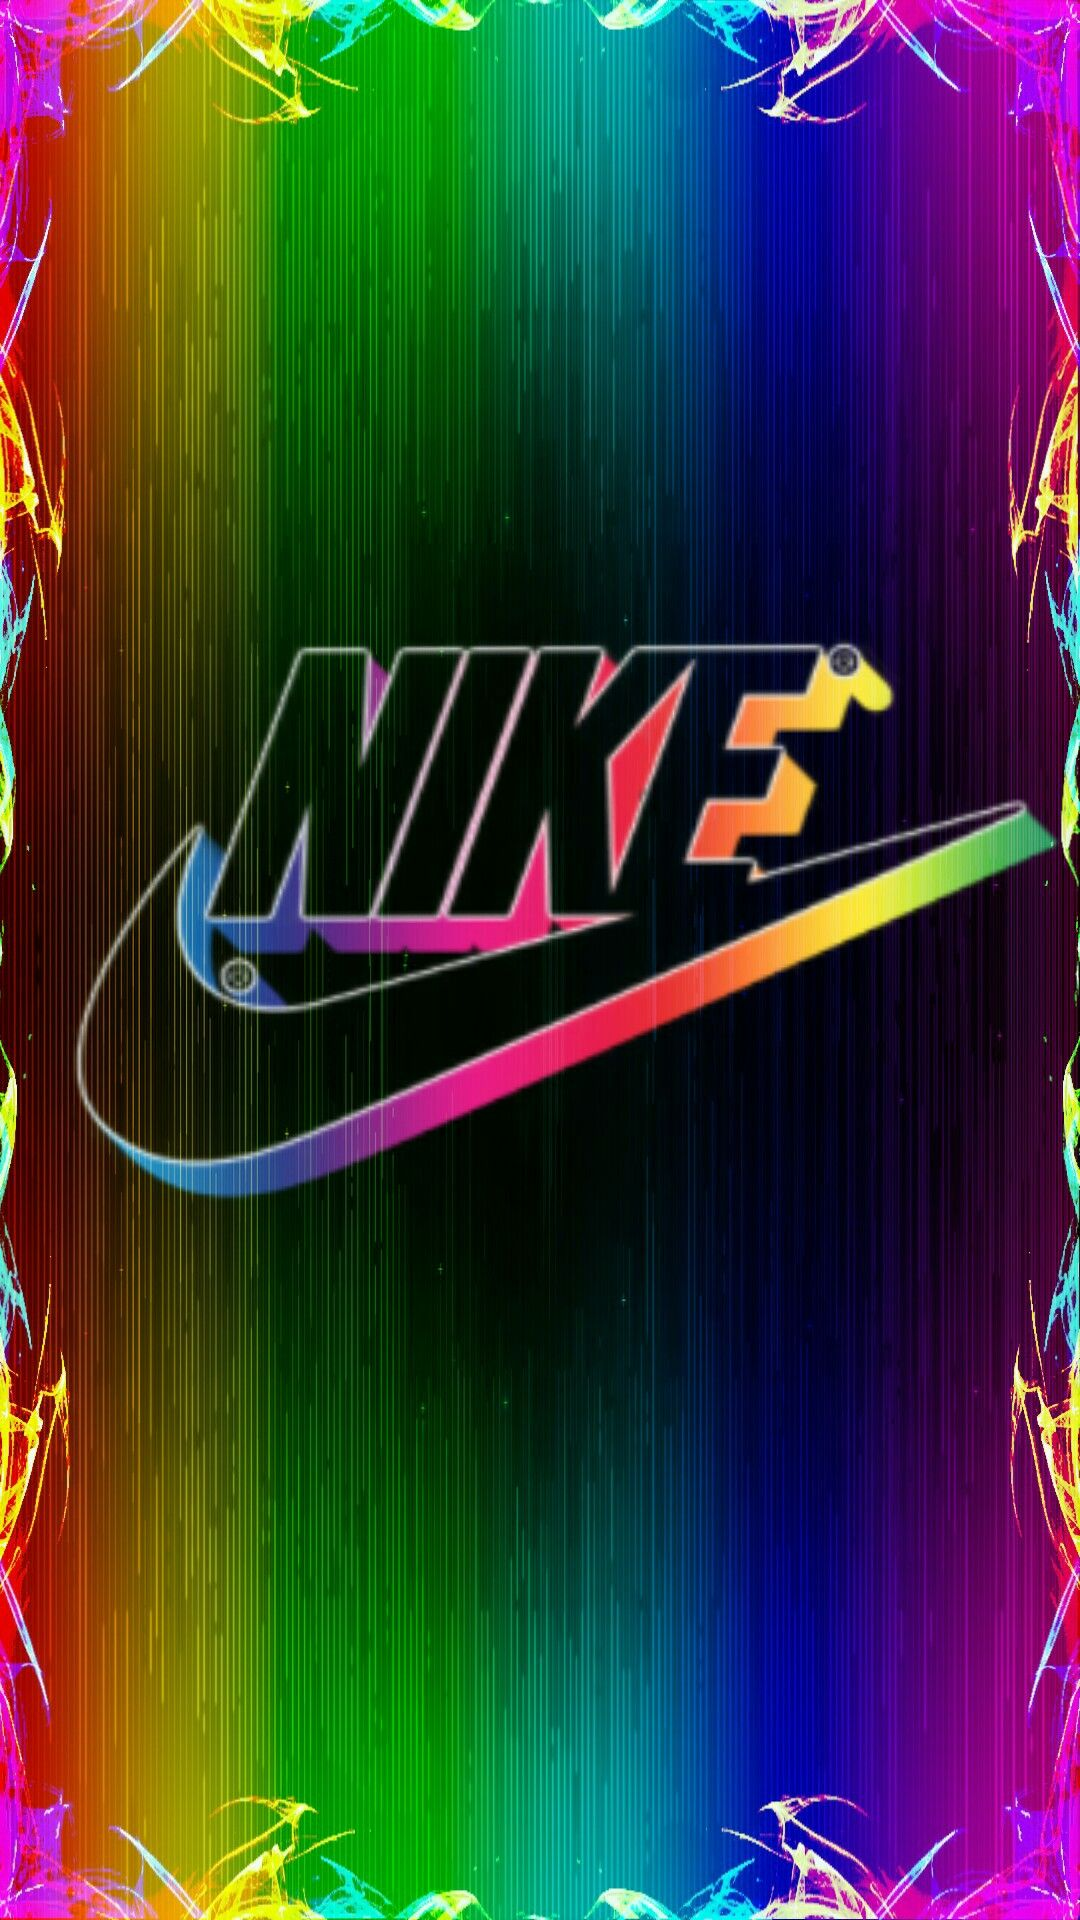 Pin By ℳ𝒾𝒸𝒽𝑒𝓁𝓁𝑒 On Iikye Nike Wallpaper Nike